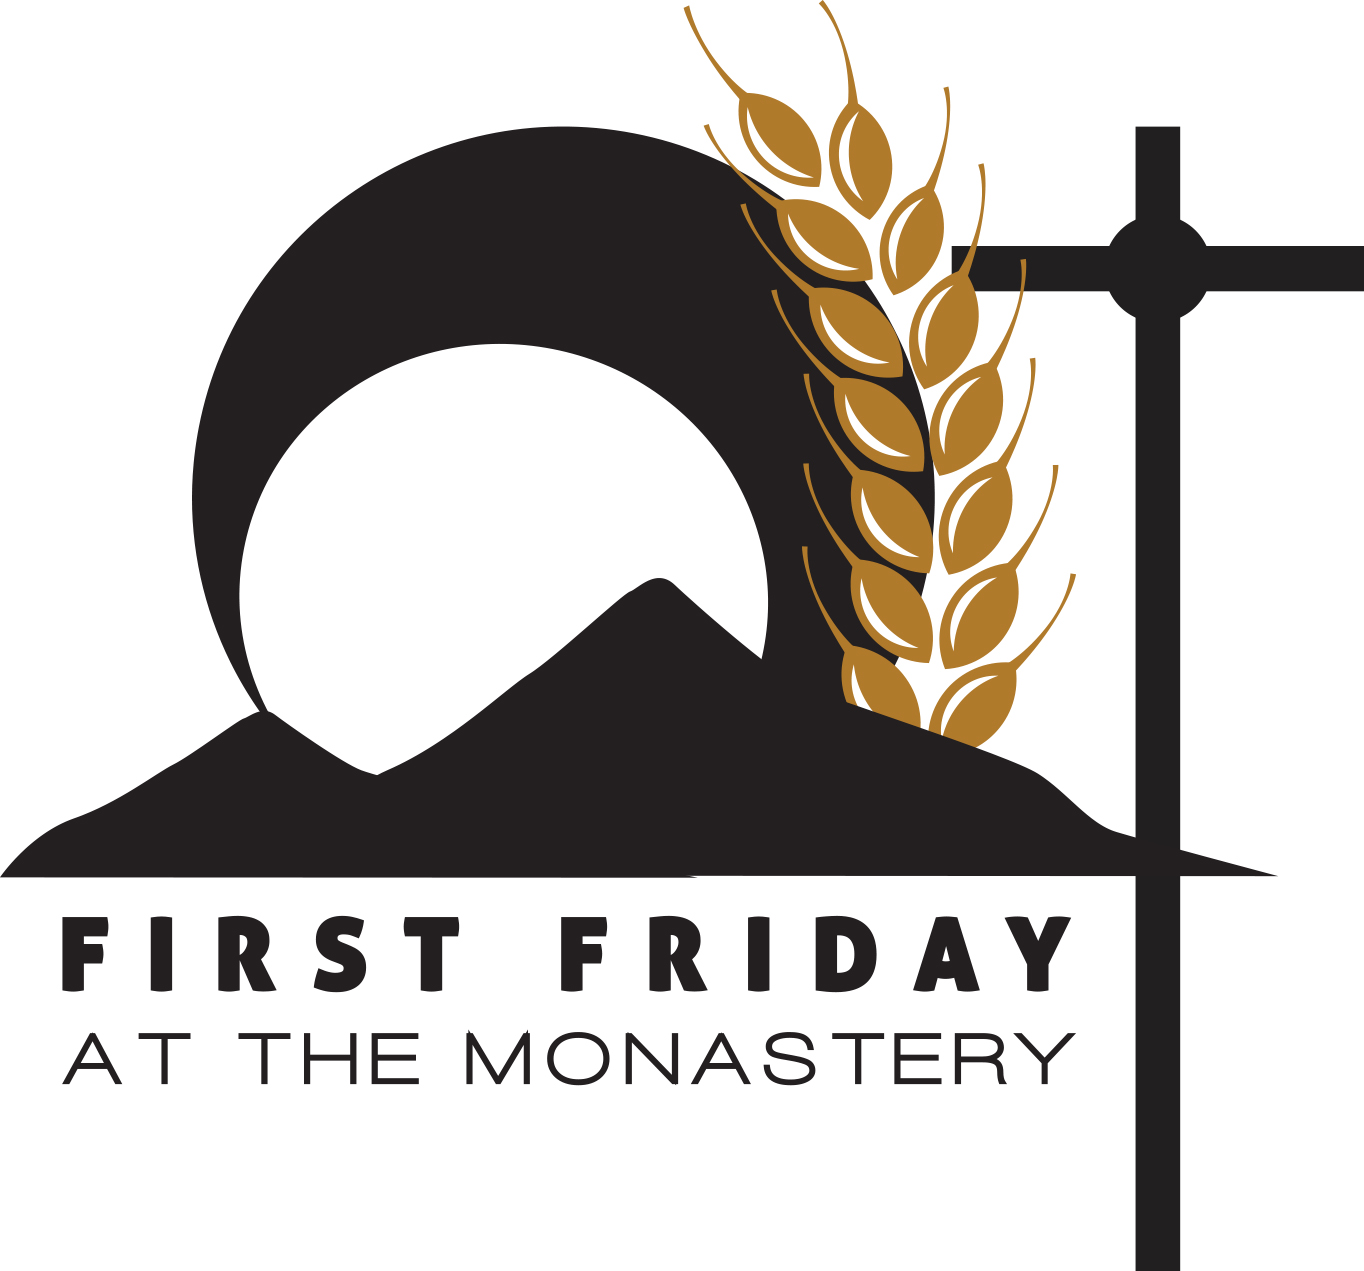 First Friday at the Monastery - APRIL 2016